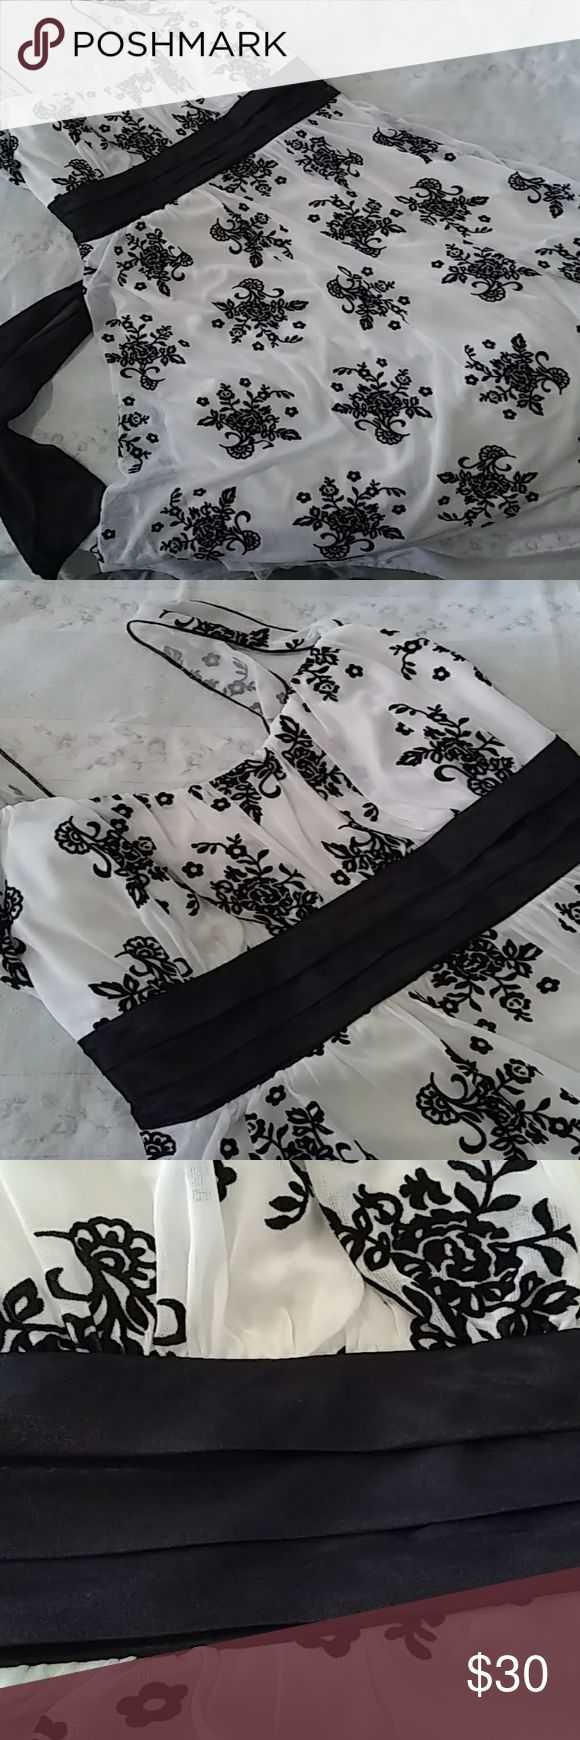 White Semi-formal Dress, Black Velvet Floral - EUC Worn only once paired with the black jacket also listed in my closet. So cute for formal dances or special events! Trixxi Dresses Prom